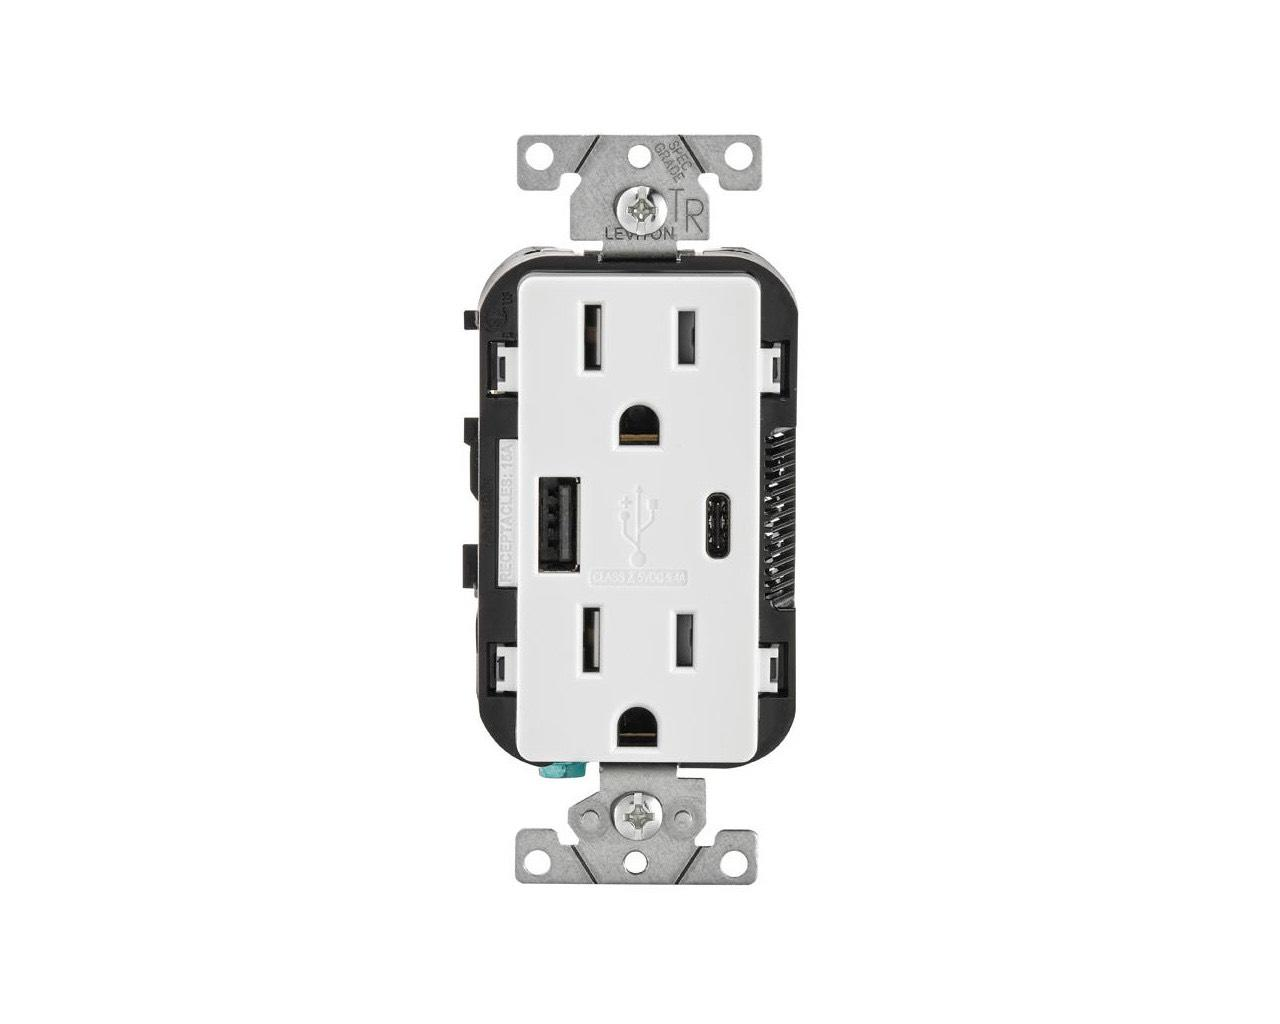 leviton-15-amp-decora-type-a-and-c-usb-charger-resize.jpg